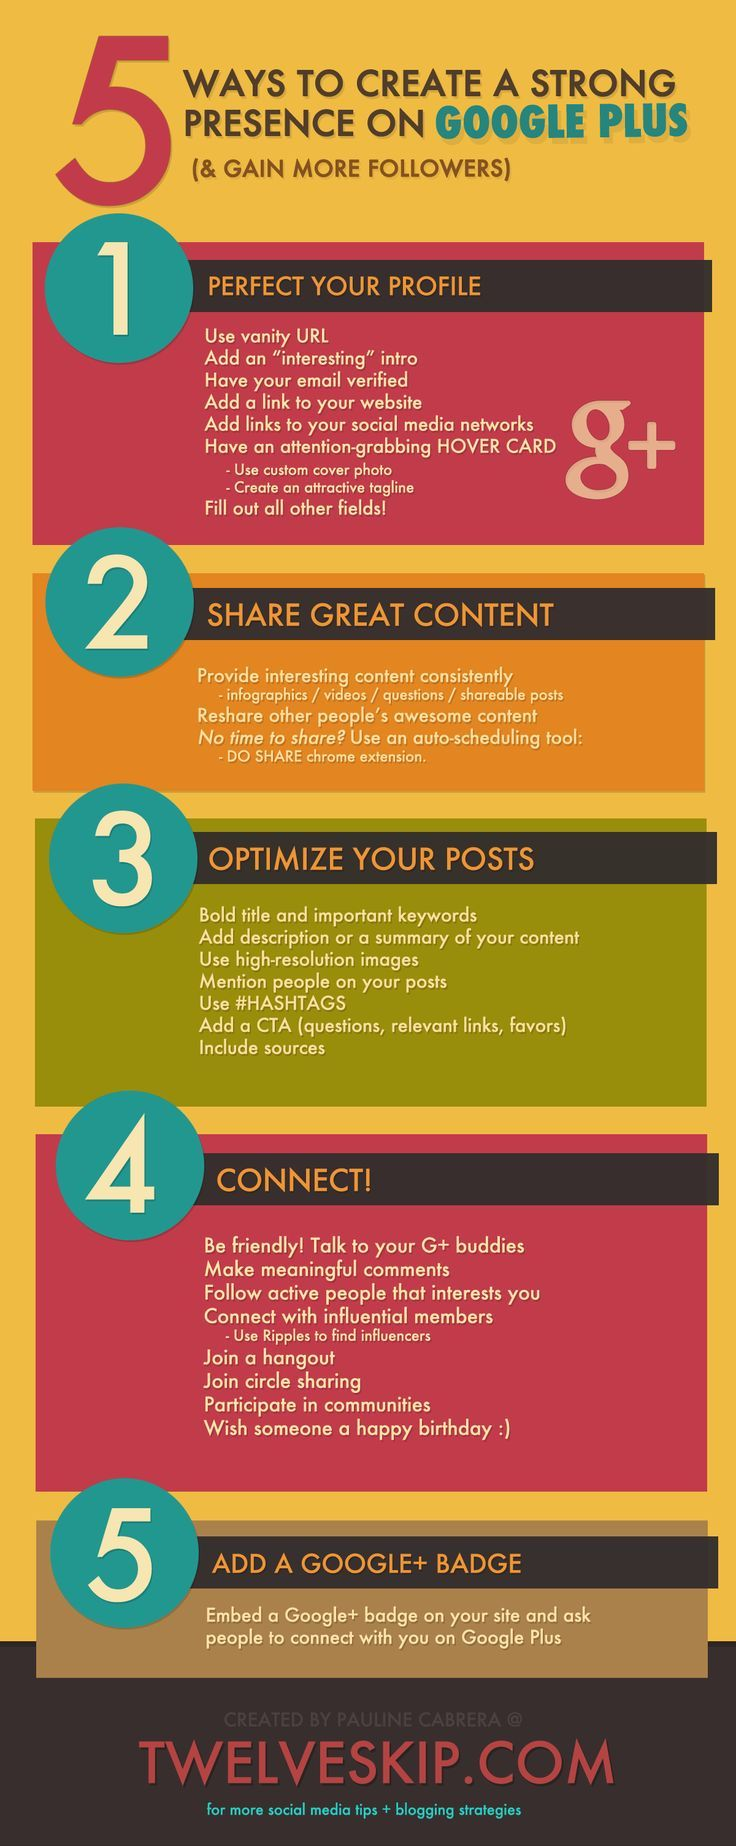 5 Ways to Create a Strong Presence on Google+